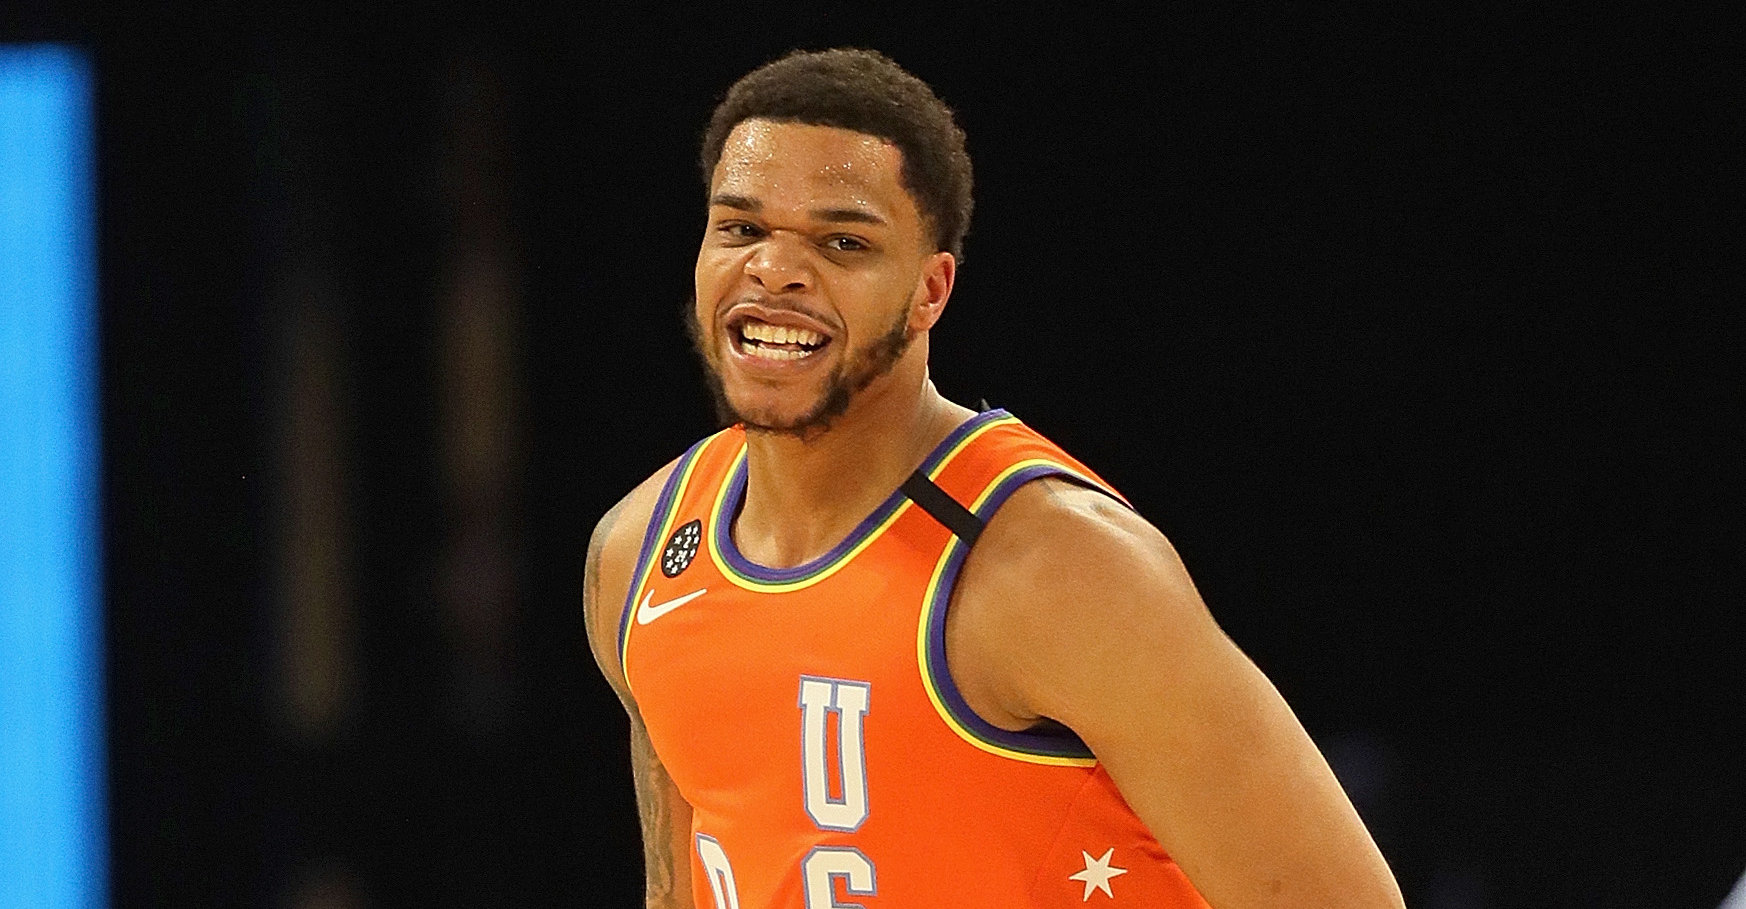 Miles Bridges leads U.S. over World in Rising Stars Challenge